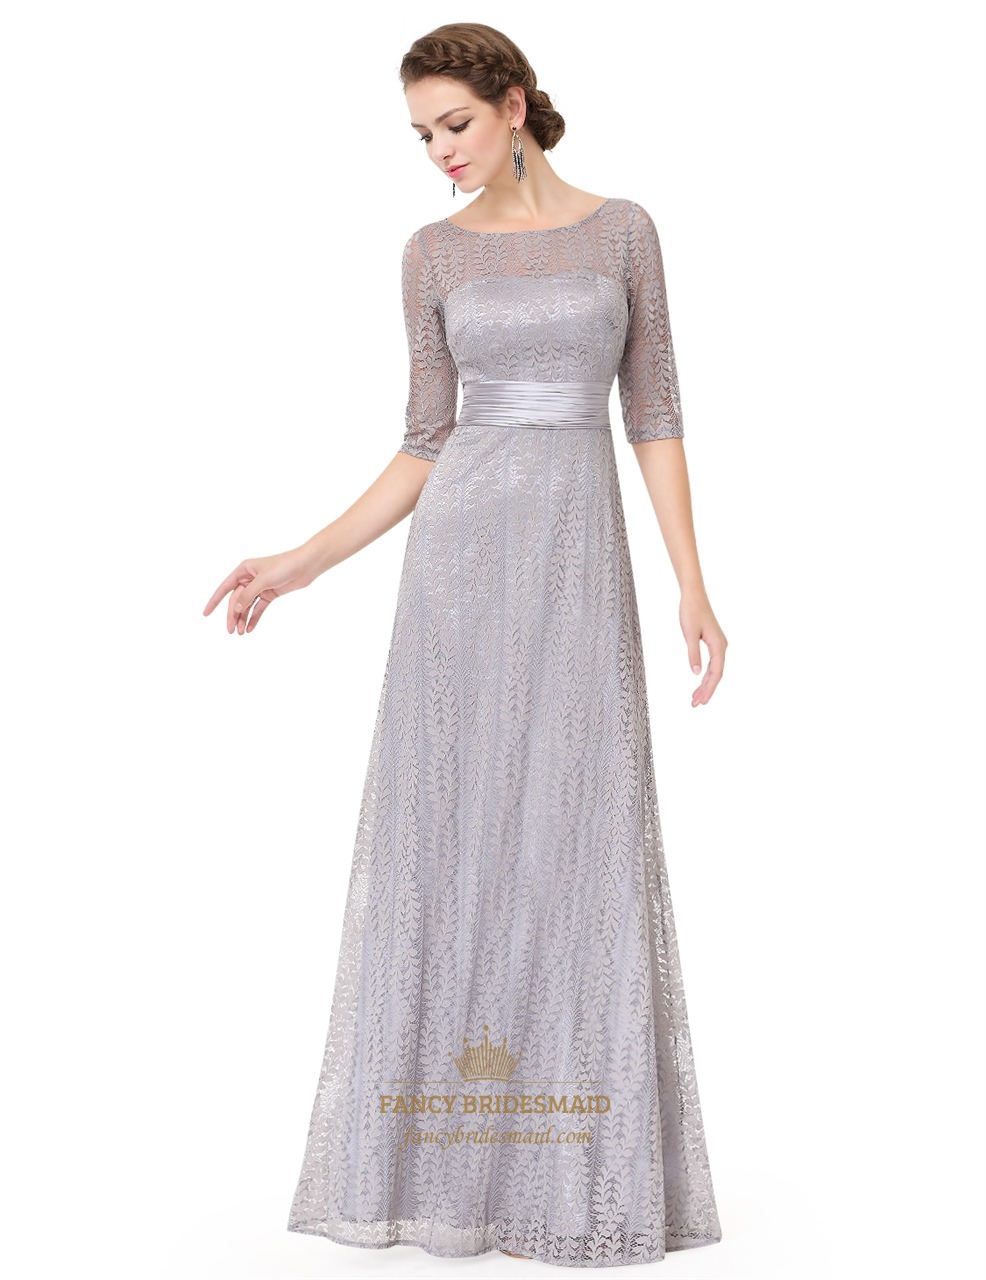 silver lace embellished half sleeves prom dress with